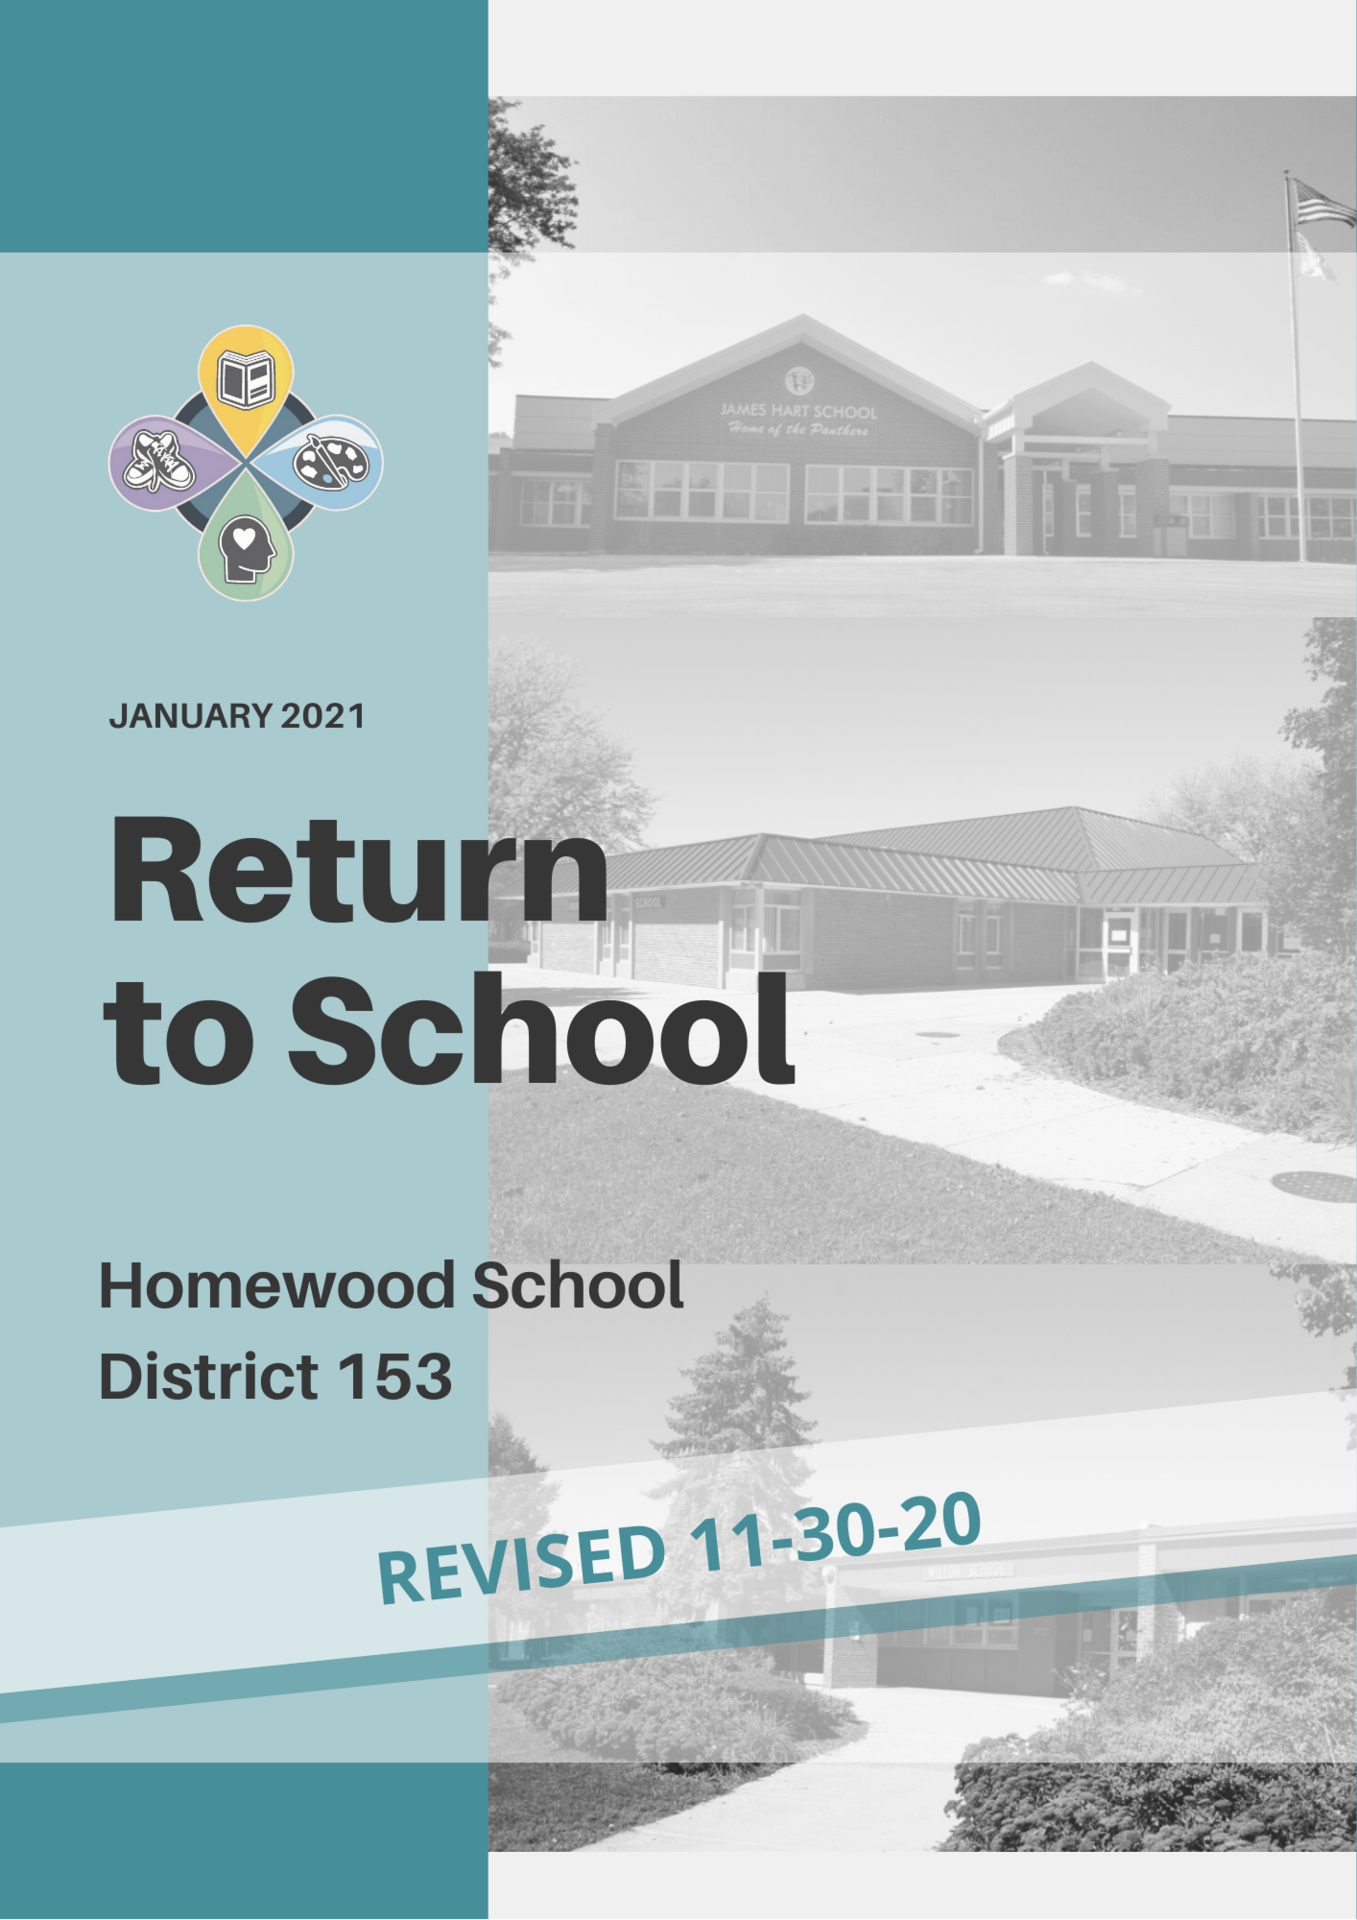 revised Return to school plan